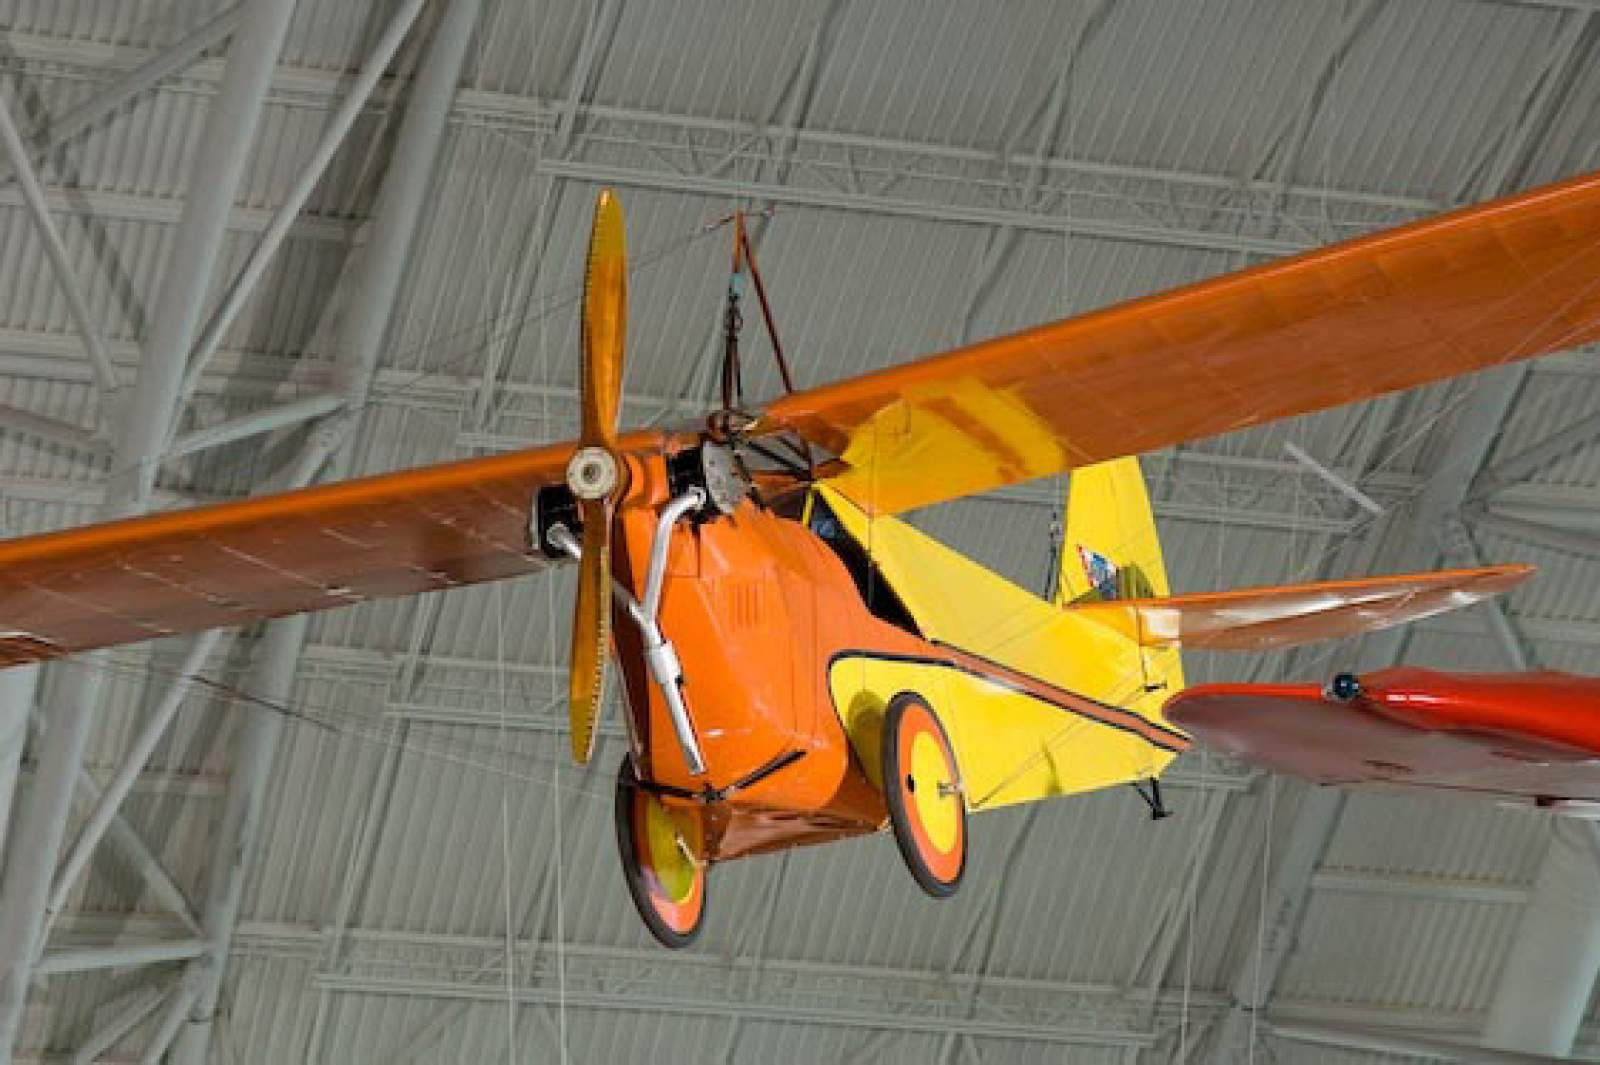 Aeronca C2 (With images) Air and space museum, Aircraft